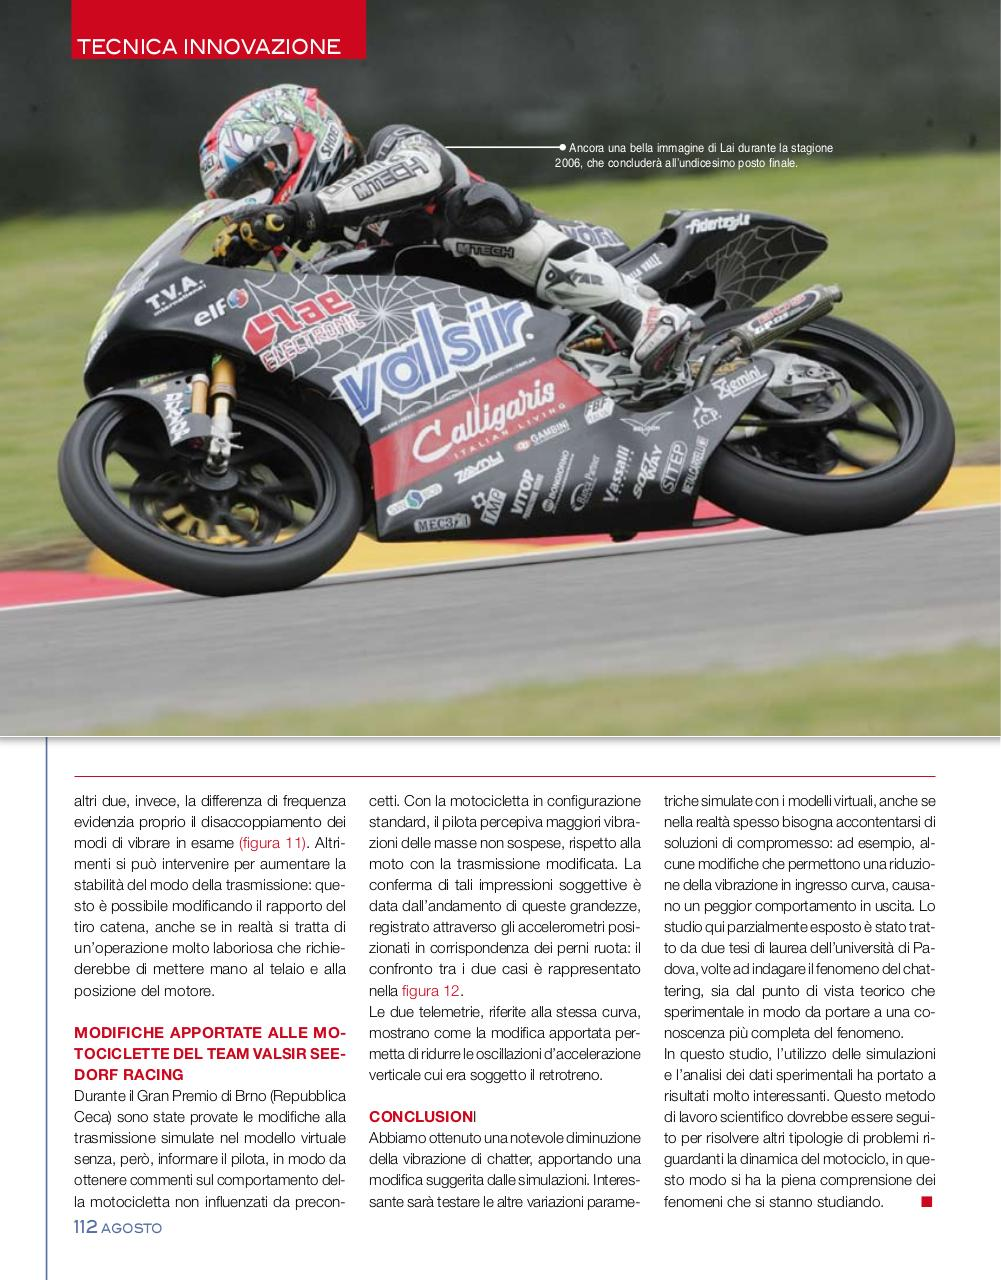 2007_10 MDRG MOTOTECNICA Gabrieli-Zin chattering.pdf - page 5/5